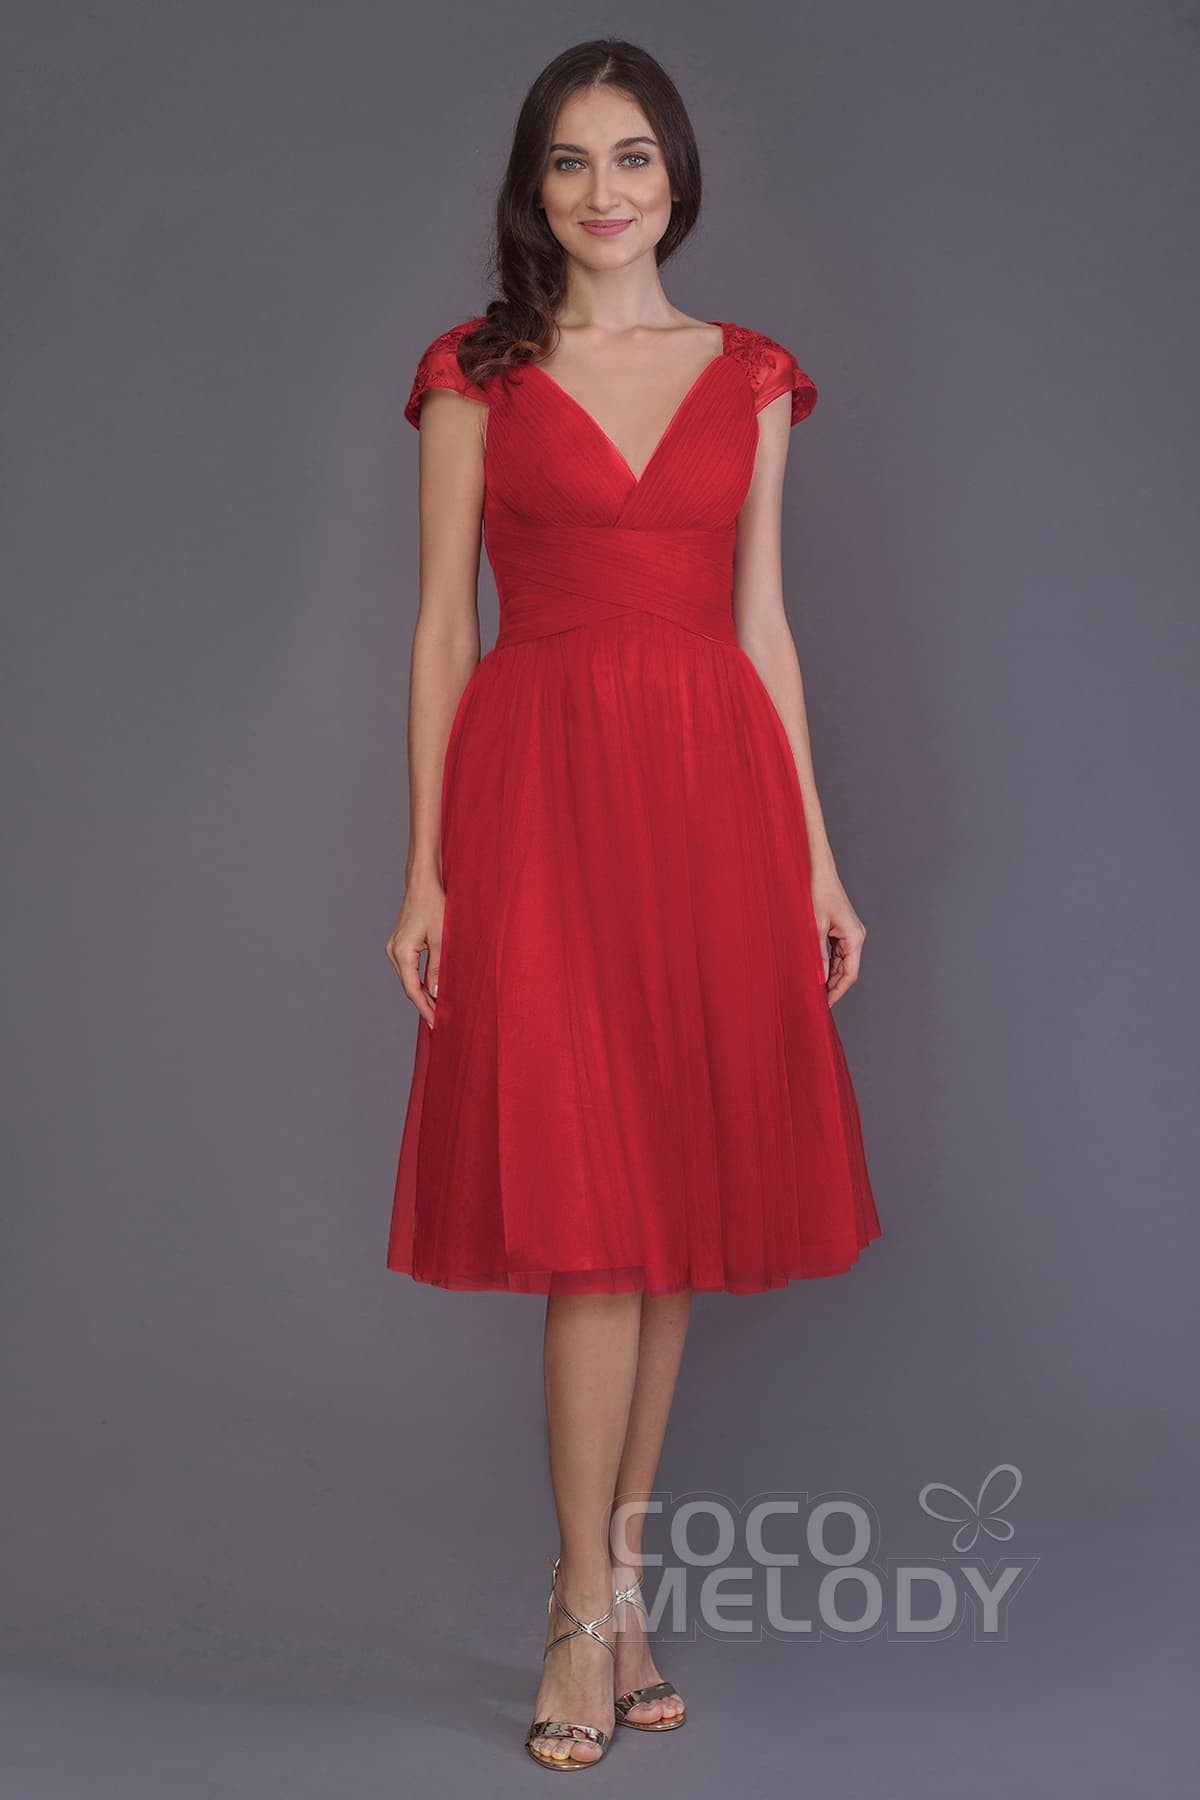 A tea-length red wedding dress